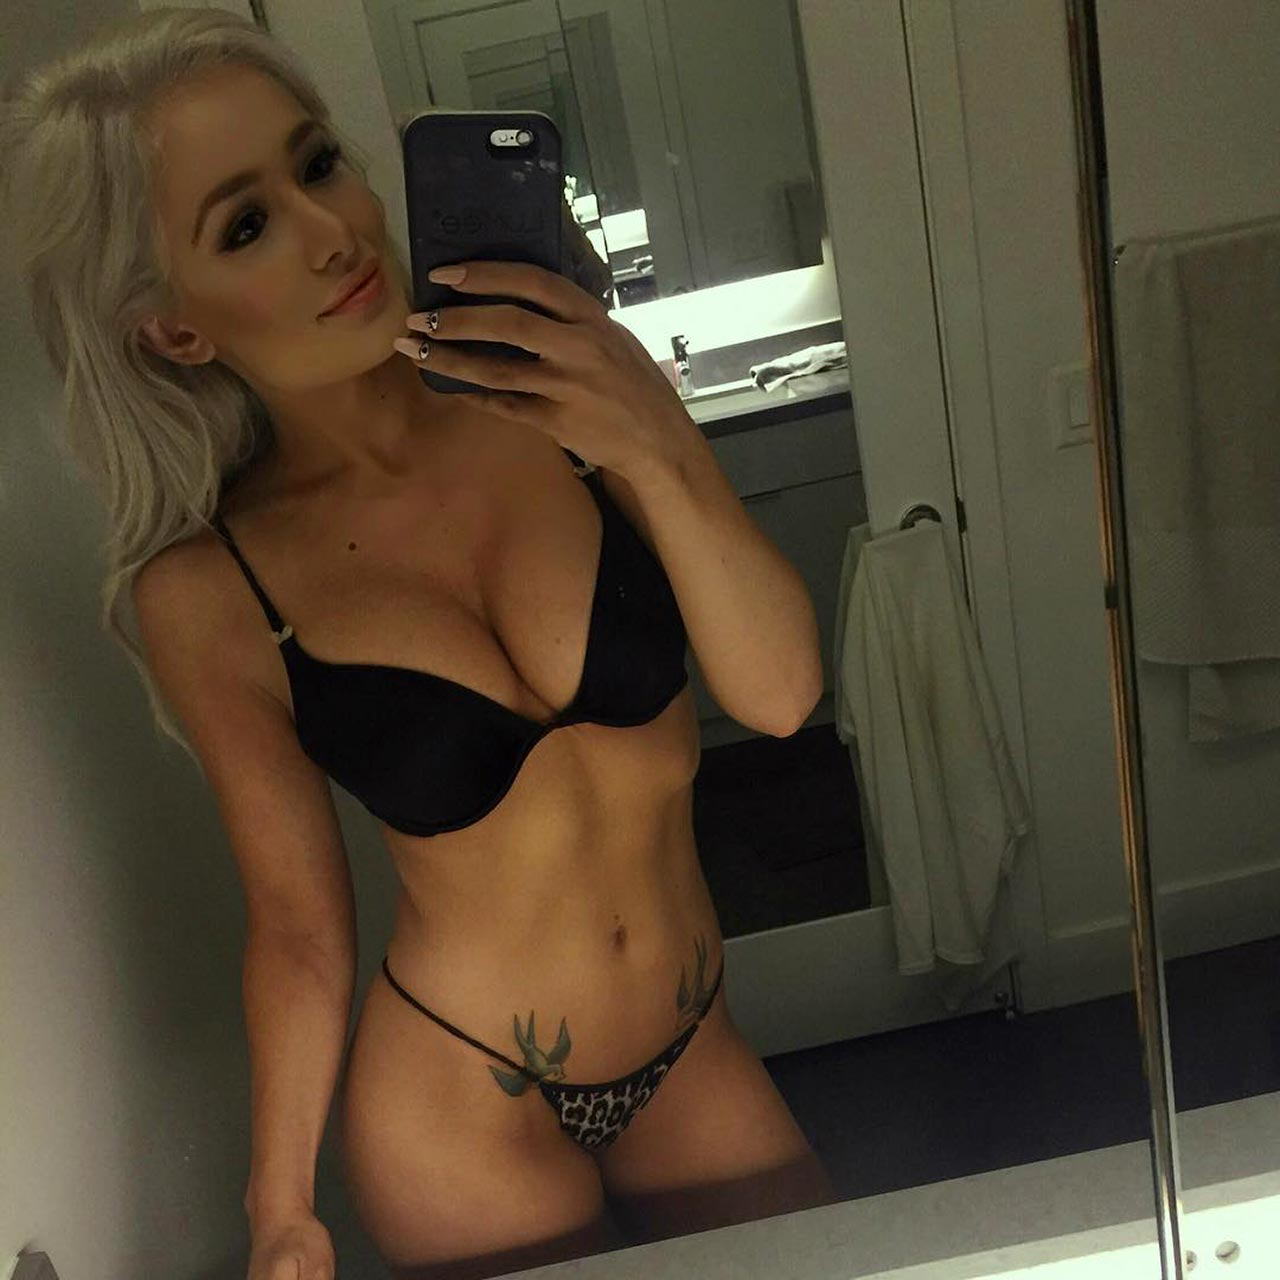 Andrea Bordeaux Nude scarlett bordeaux leaked nude photos — once this fat whore